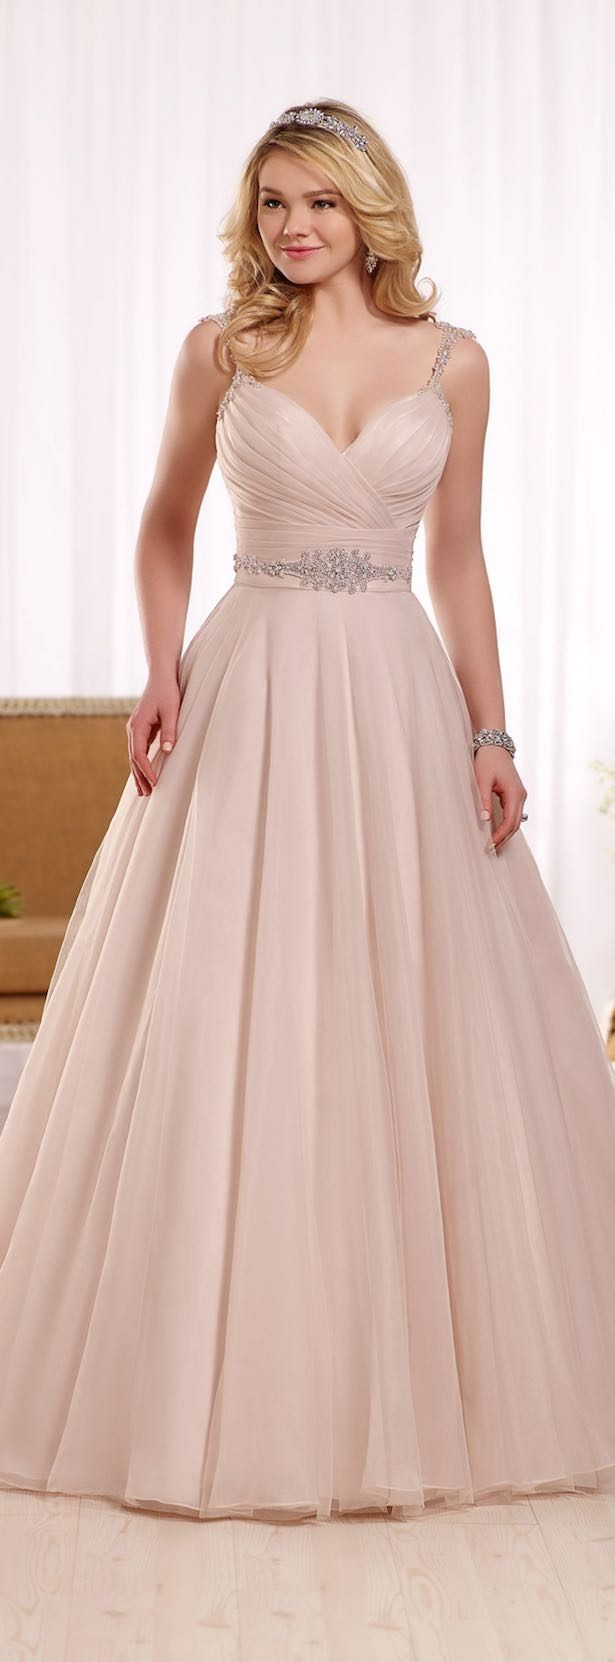 39 best Wedding Gown images on Pinterest | Wedding frocks, Bridal ...